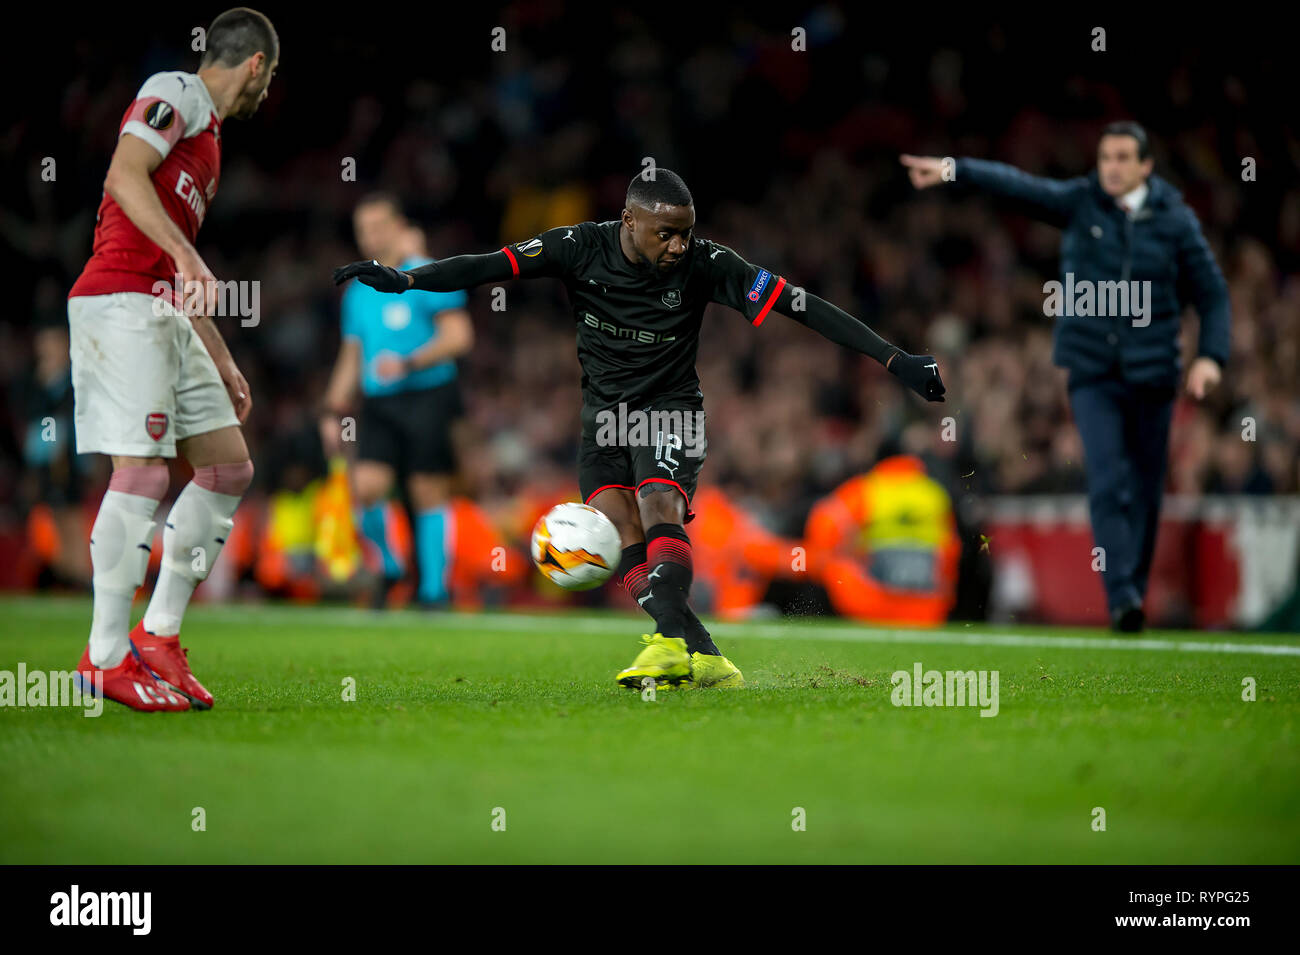 London, UK. 14th Mar, 2019. James Lea Siliki of Rennes during the UEFA Europa League Round of 32 second leg match between Arsenal and Rennes at the Emirates Stadium, London, England on 14 March 2019. Photo by Salvio Calabrese.  Editorial use only, license required for commercial use. No use in betting, games or a single club/league/player publications. Credit: UK Sports Pics Ltd/Alamy Live News Stock Photo